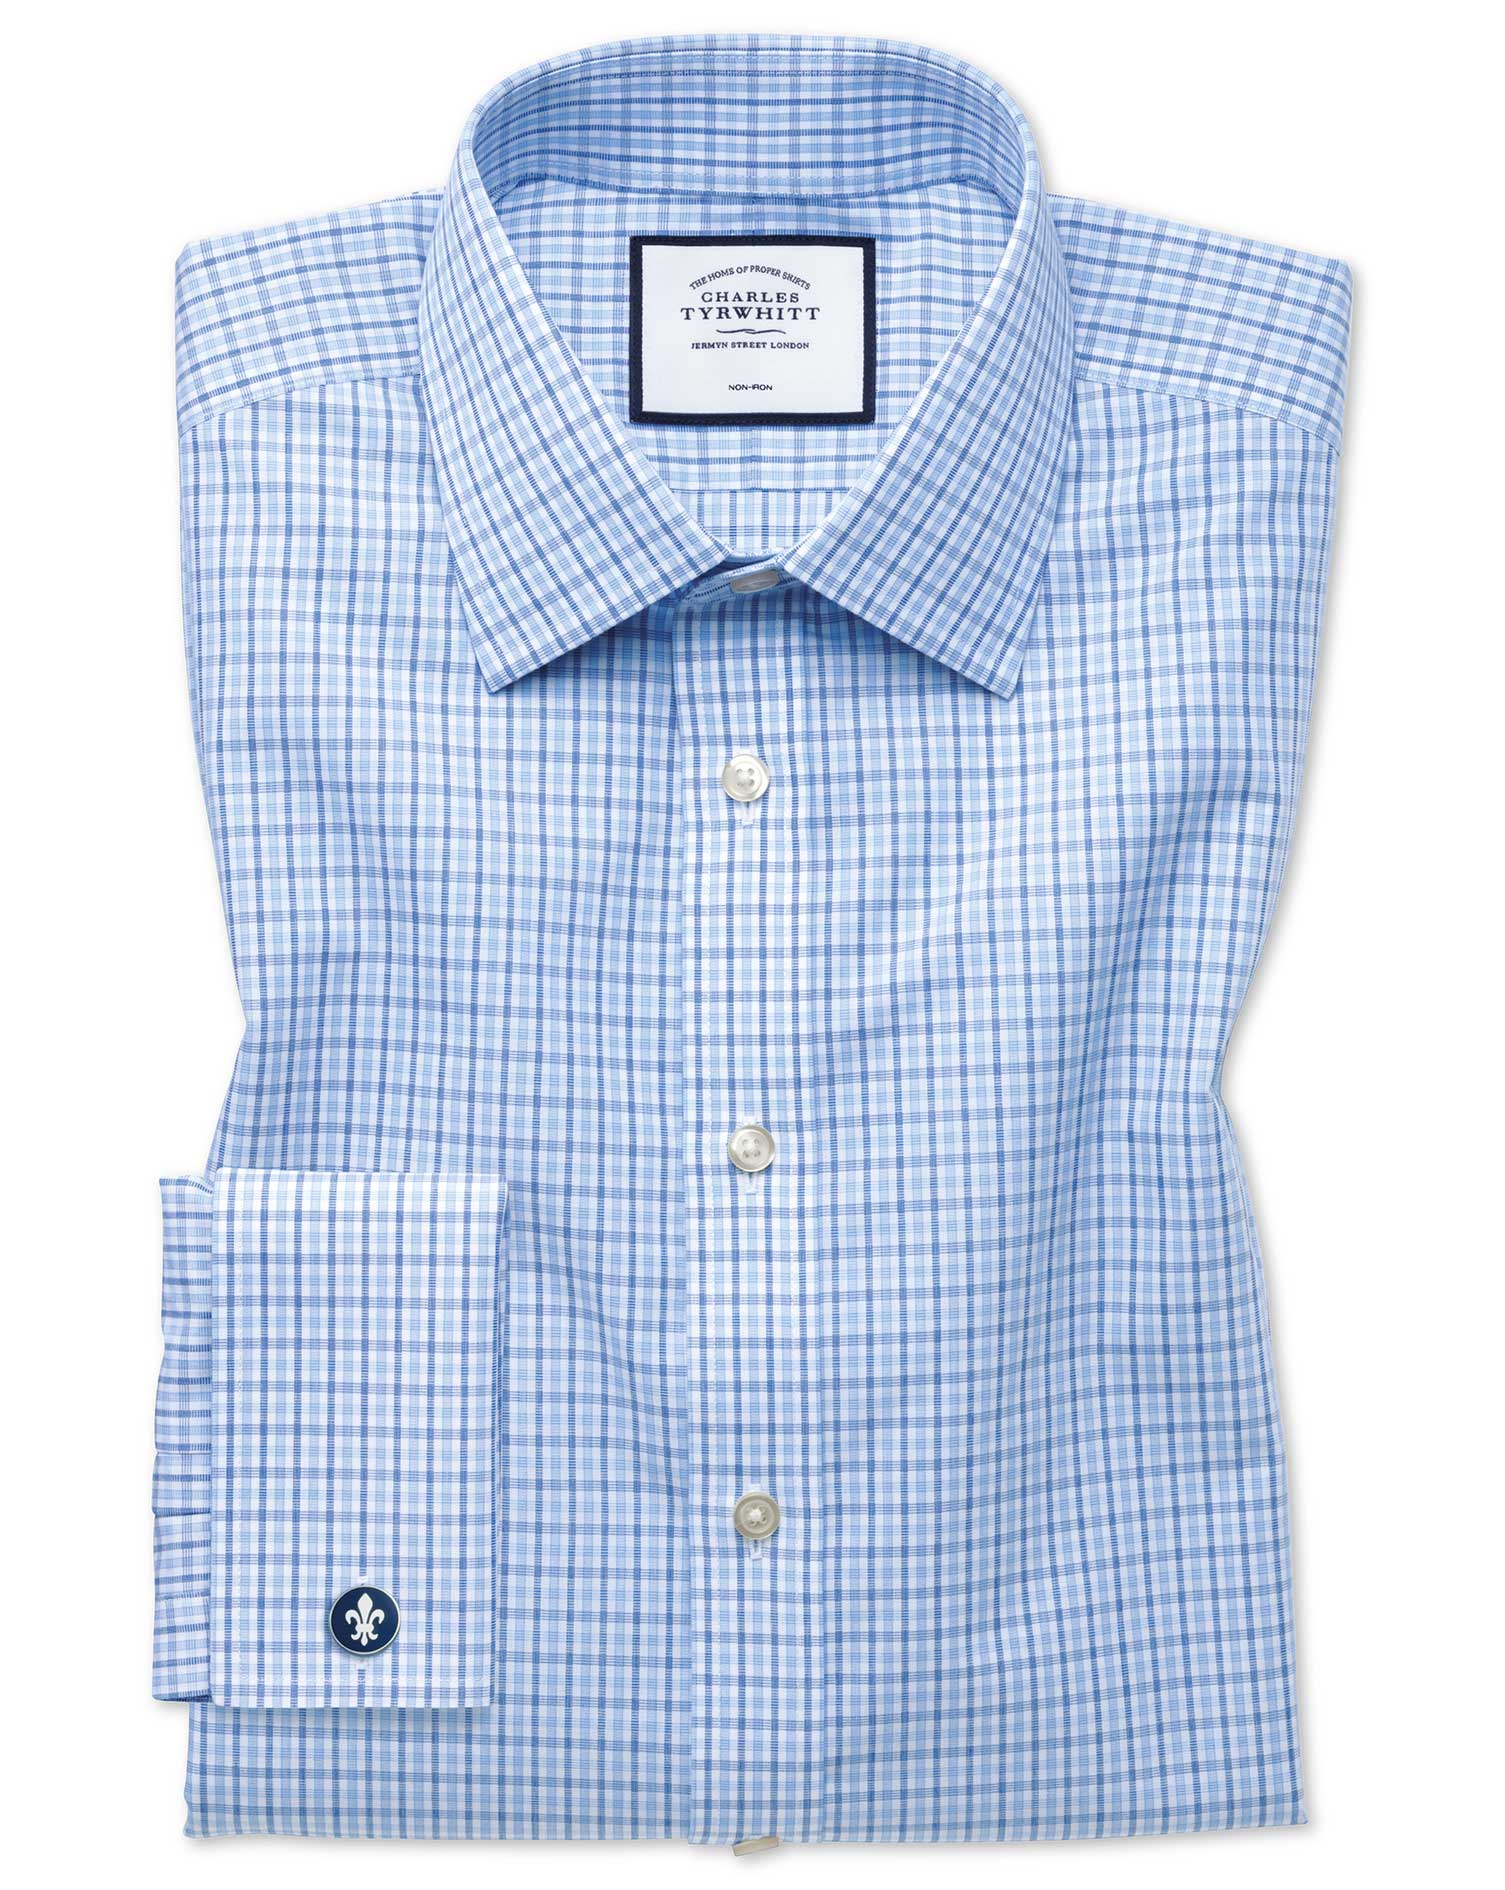 Slim Fit Non-Iron Poplin Blue and Sky Blue Cotton Formal Shirt Double Cuff Size 18/35 by Charles Tyr